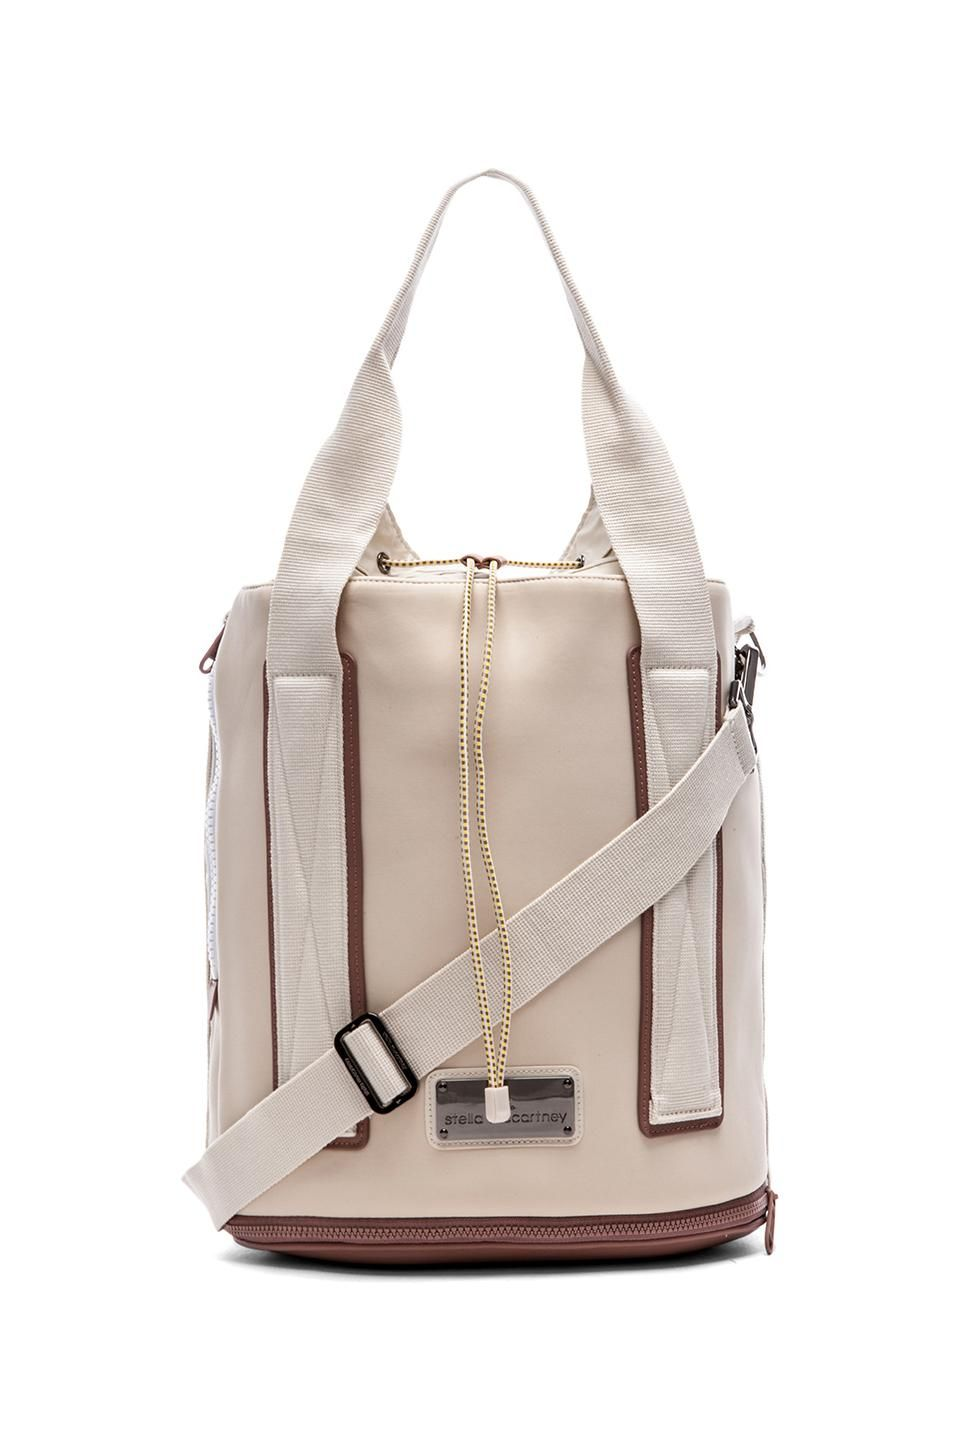 c9f294595def adidas by Stella McCartney Barricade Tennis Bag in White Vapour   Gunmetal